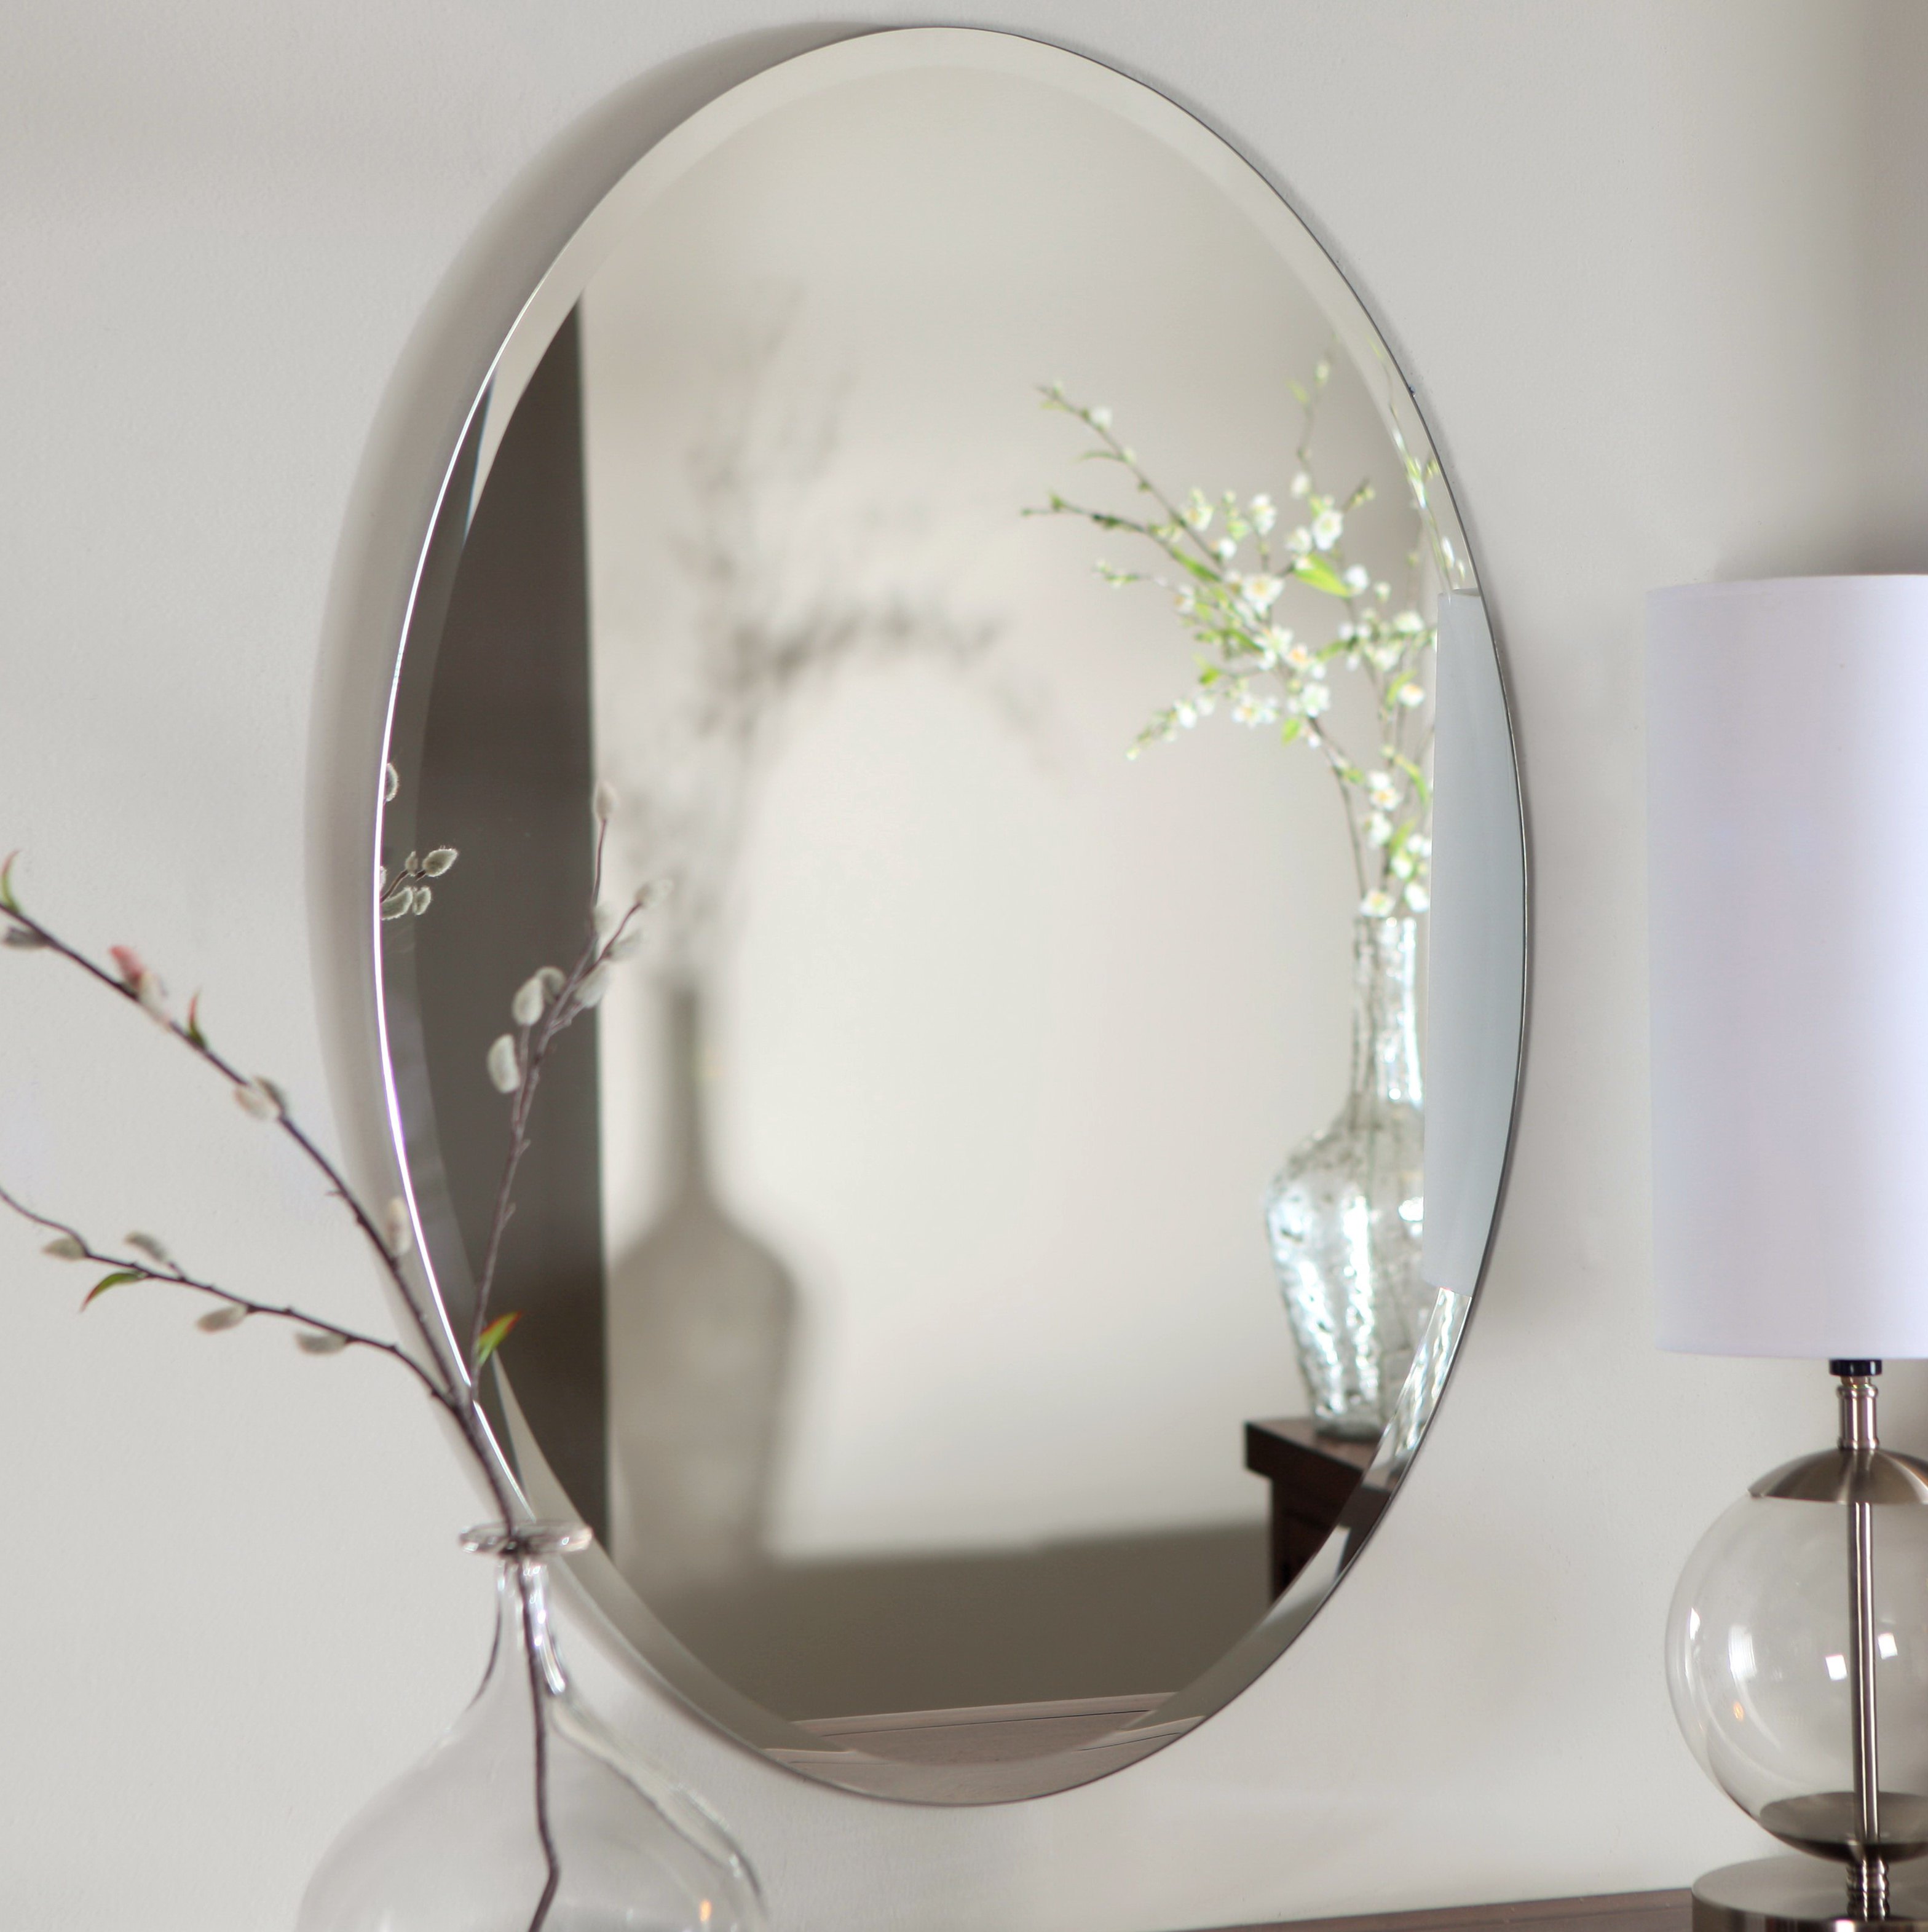 Frameless oval bathroom mirrors home design ideas for Frameless bathroom mirrors